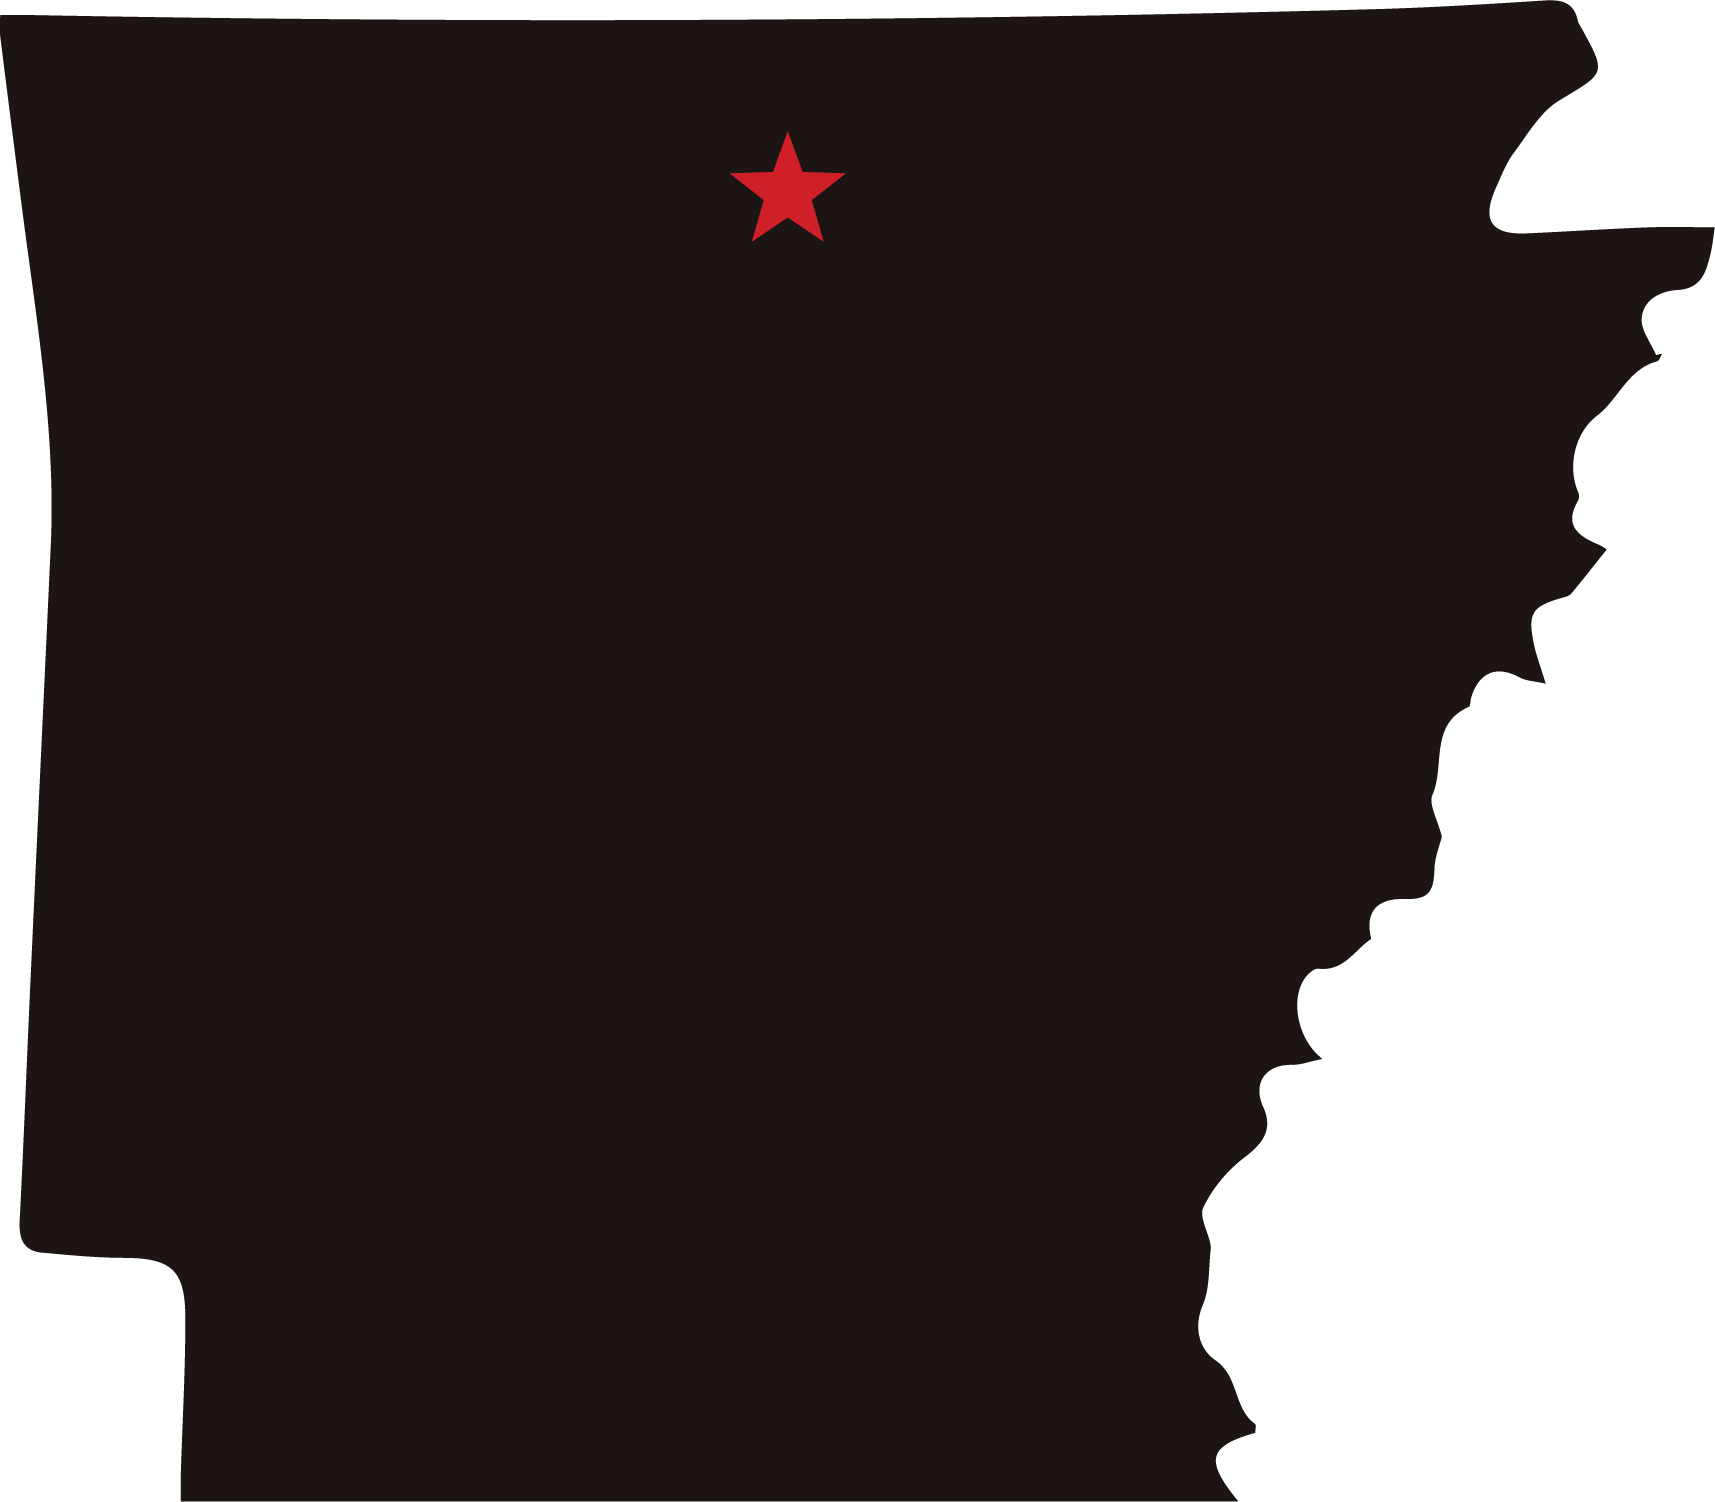 harrison-arkansas-insulation-map.png